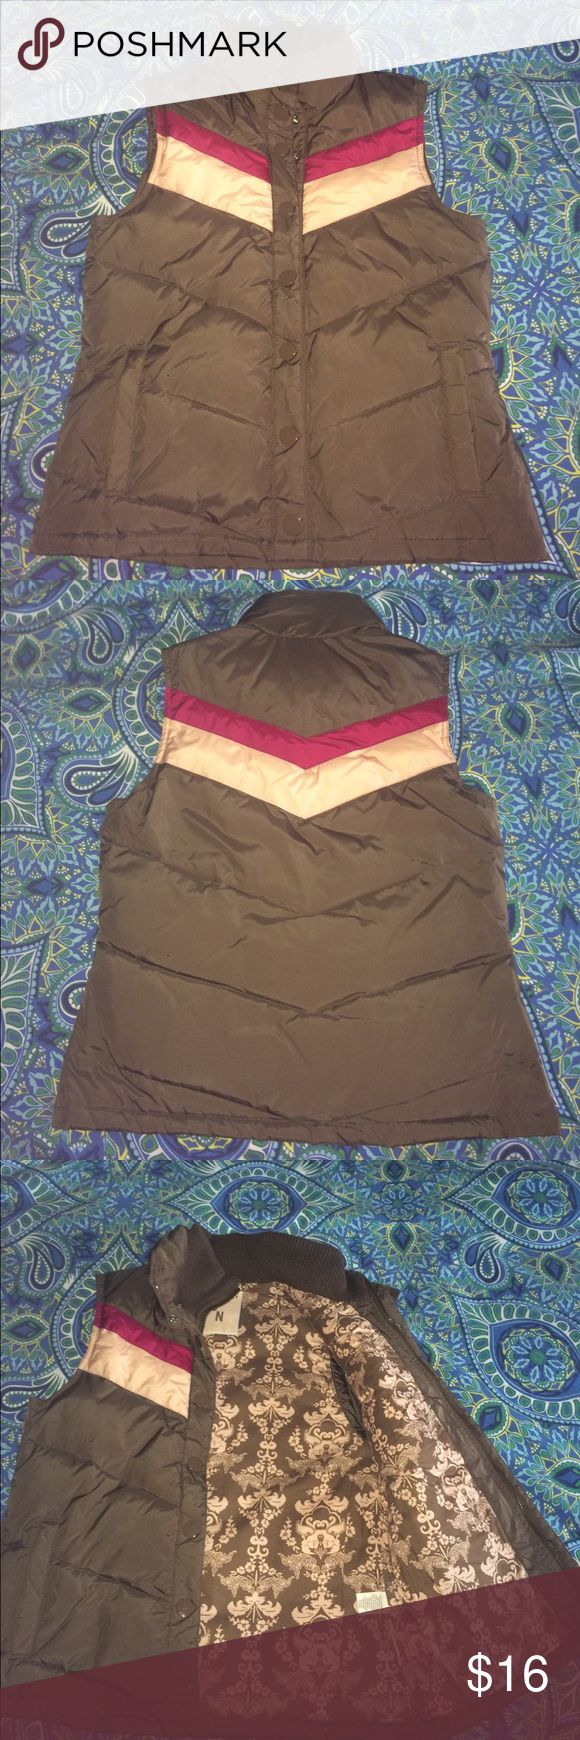 EUC Old Navy Vest EUC Size Medium. Old Navy Vest. Old Navy Jackets & Coats Vests